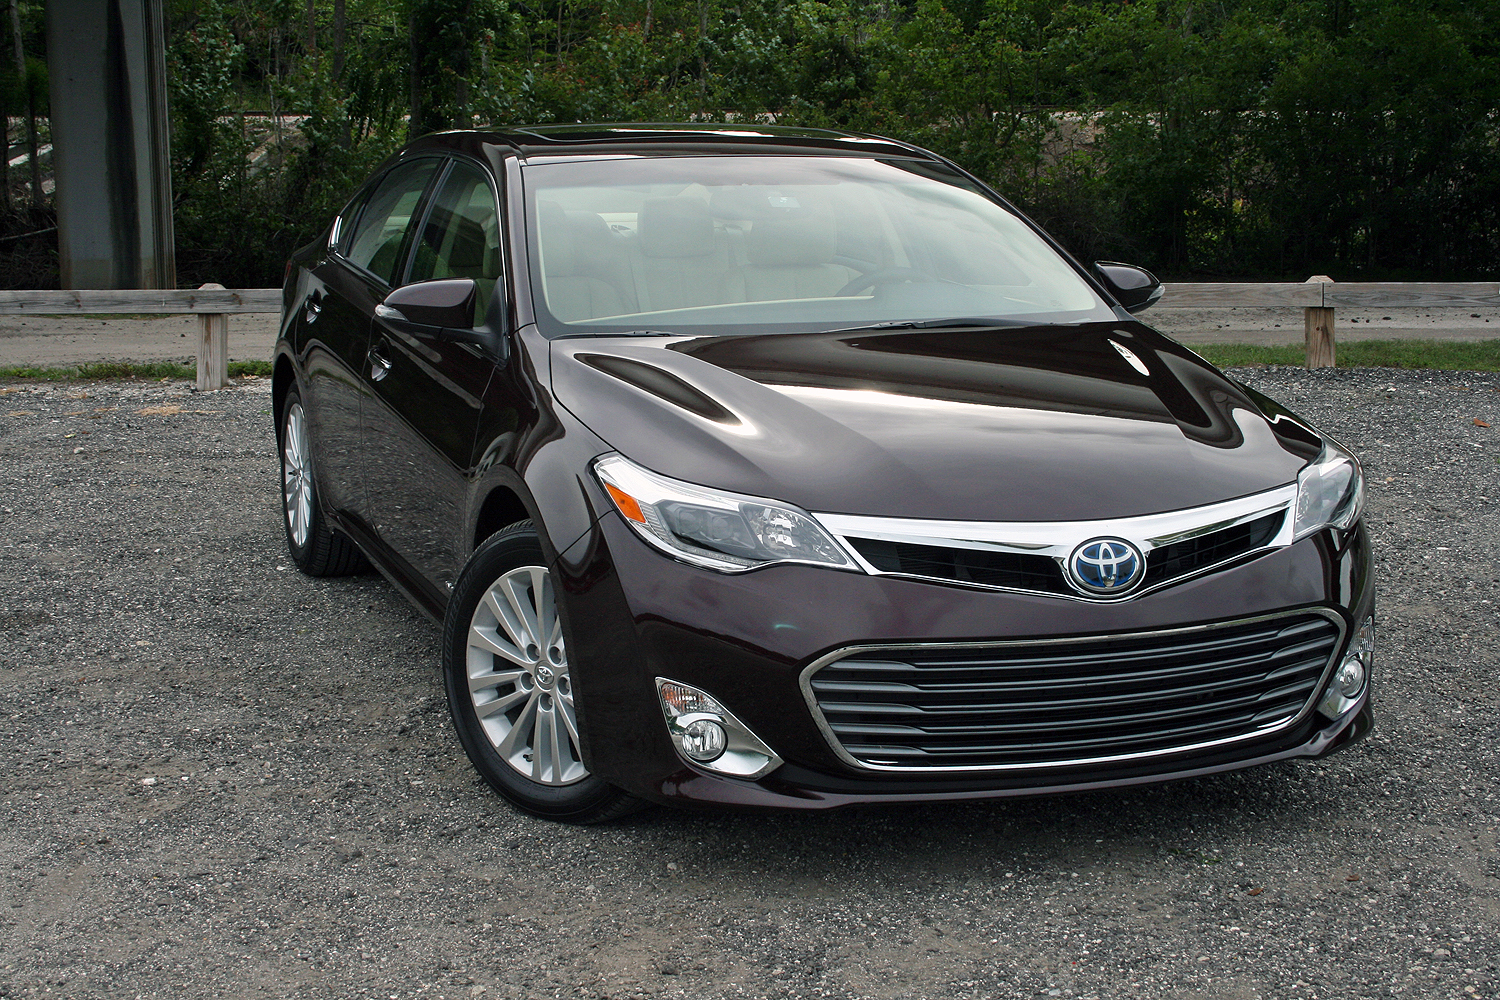 2015 toyota avalon hybrid driven review top speed. Black Bedroom Furniture Sets. Home Design Ideas